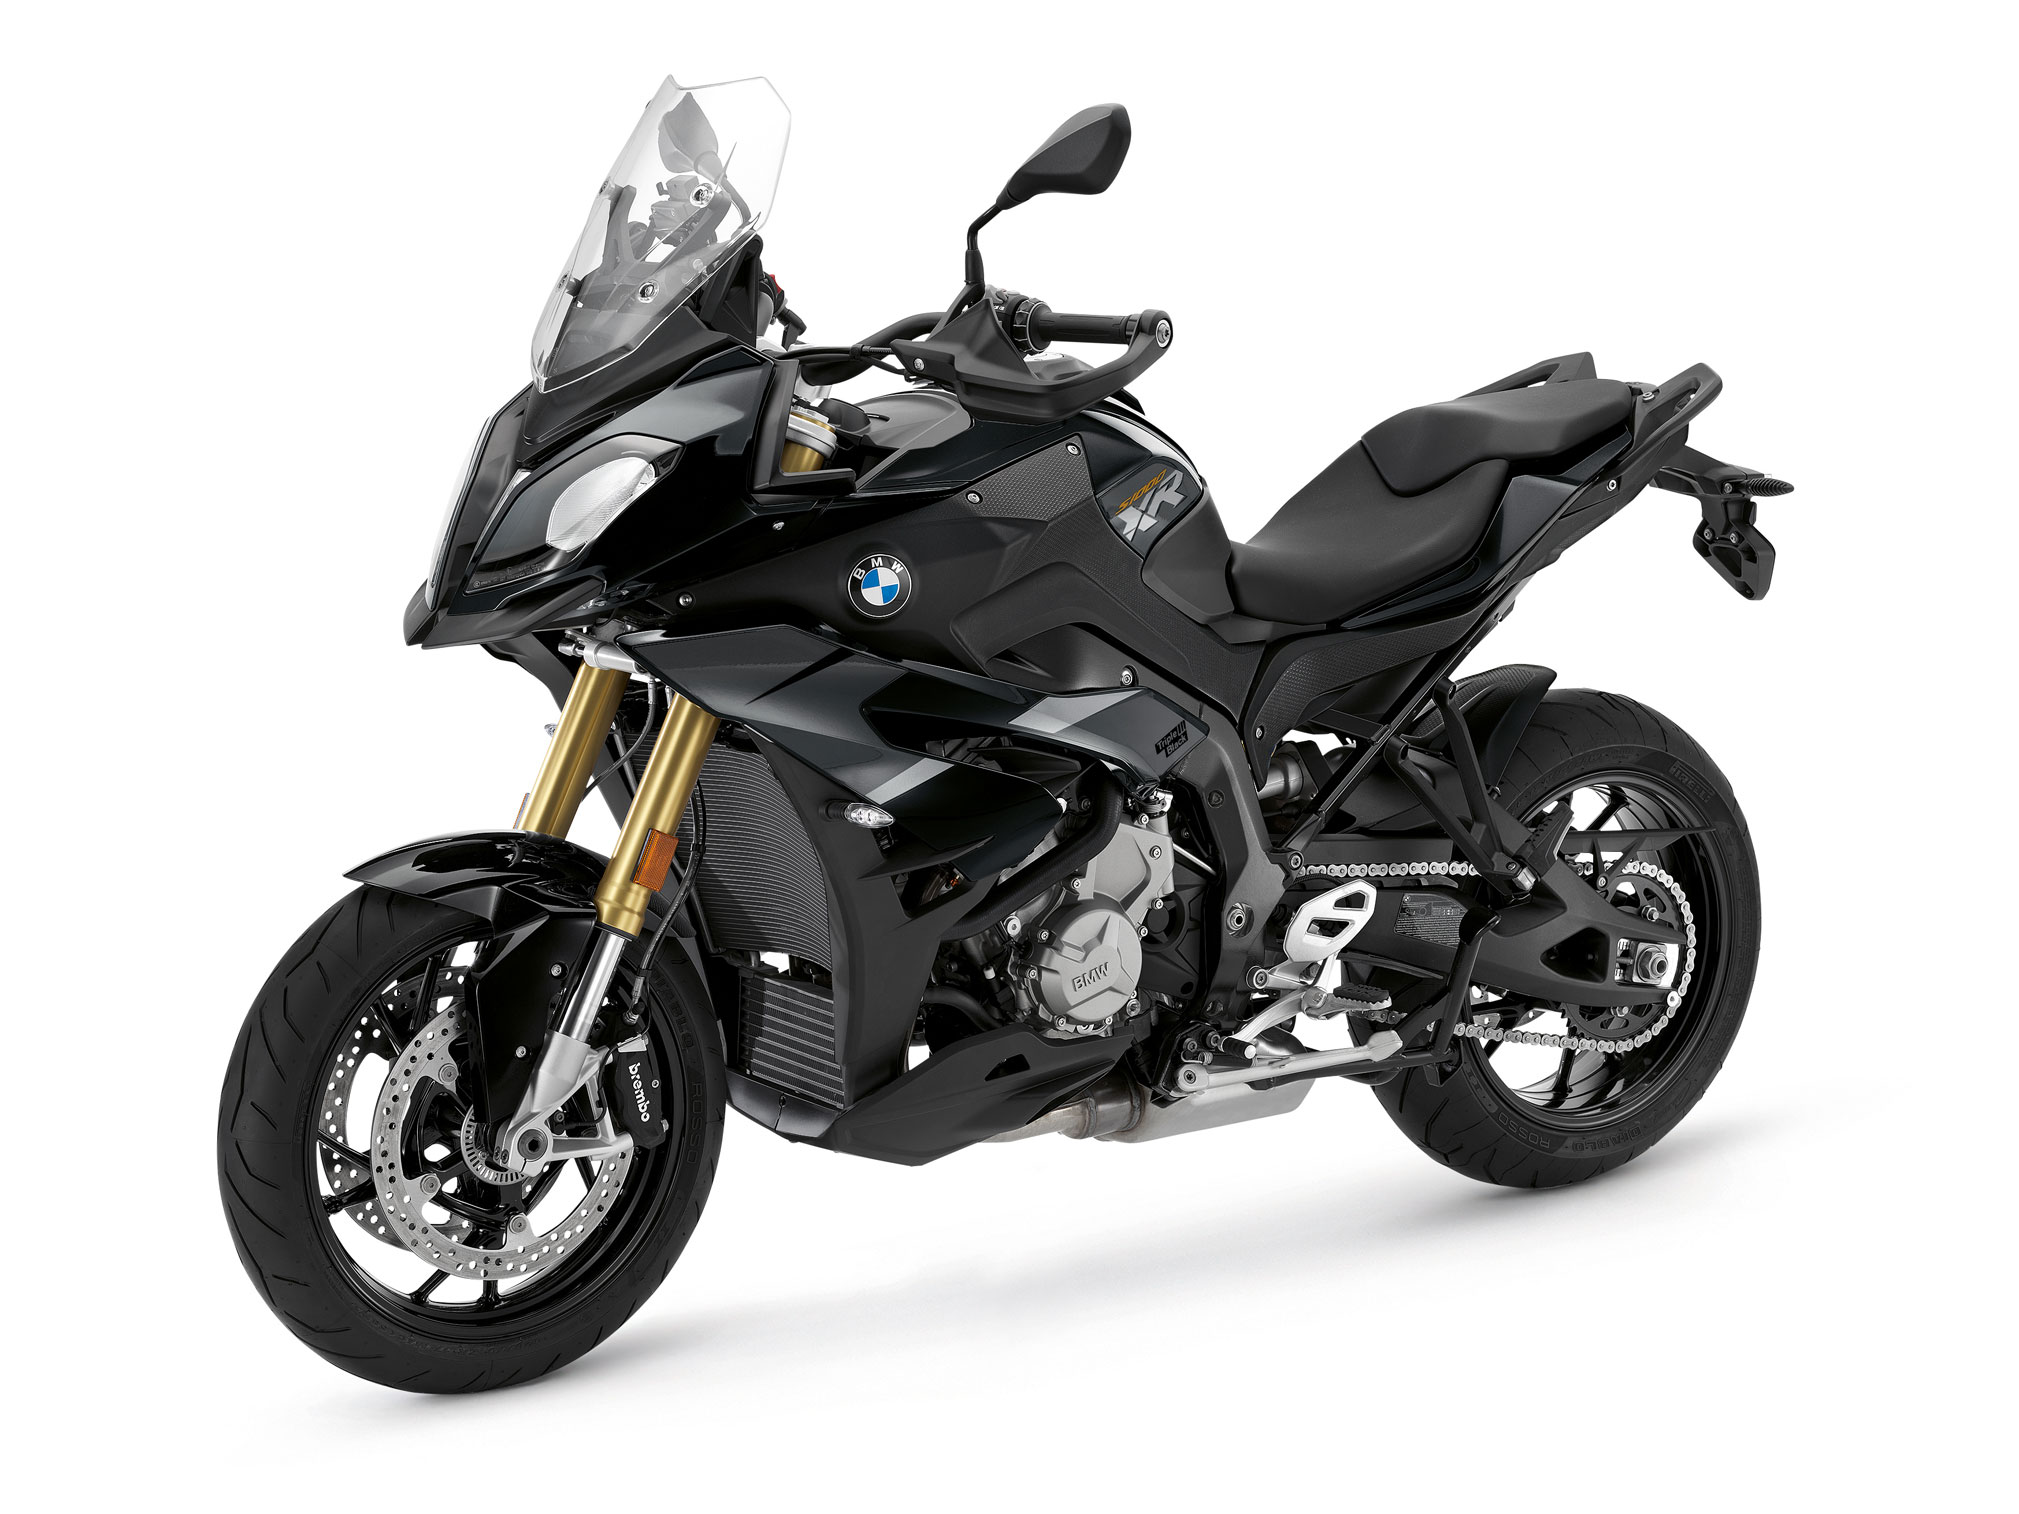 2019 bmw s1000xr guide total motorcycle. Black Bedroom Furniture Sets. Home Design Ideas